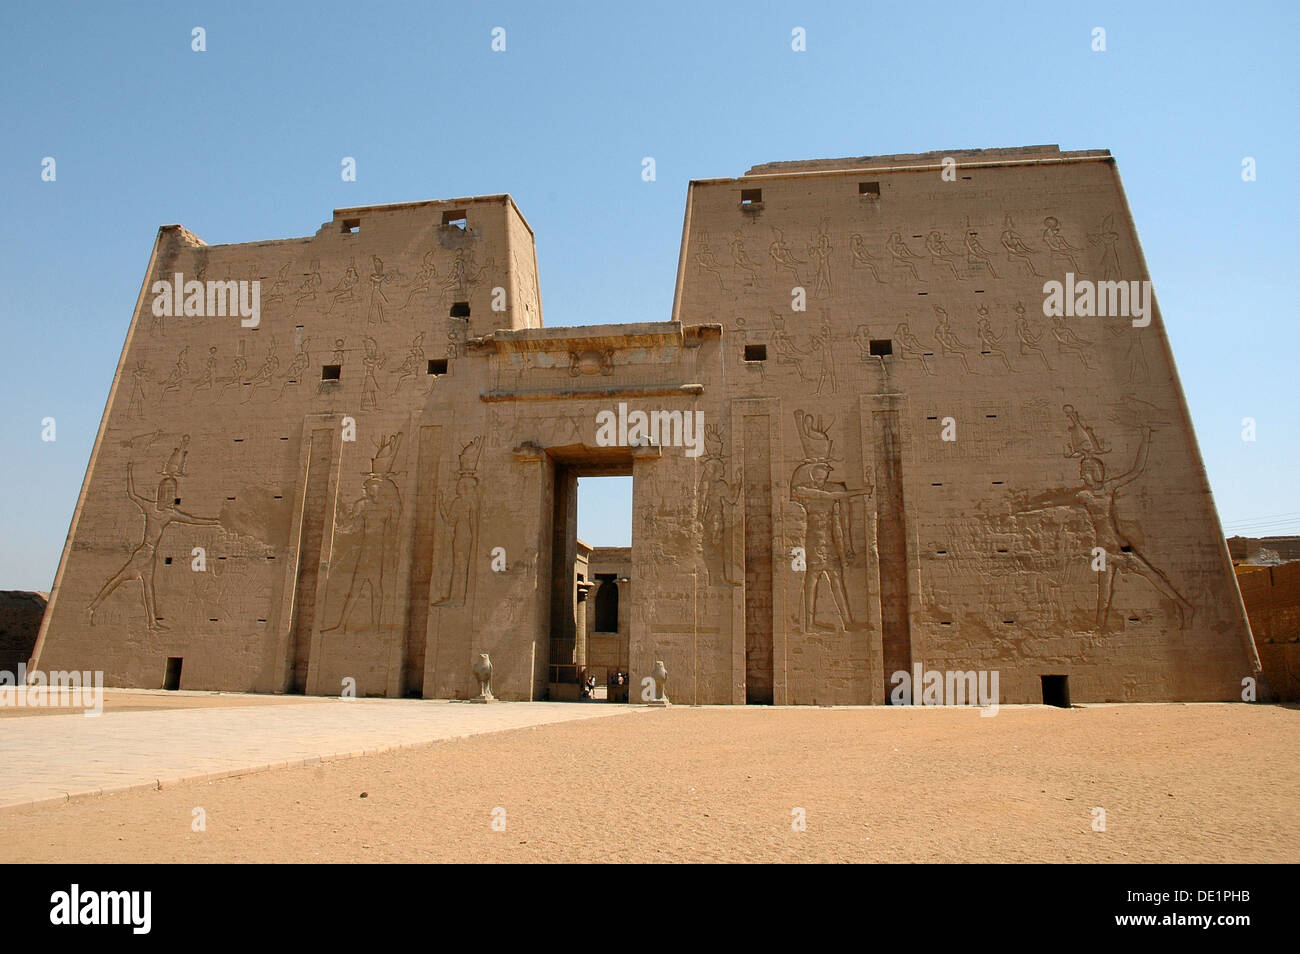 The Pylon with reliefs of the Pharaoh Ptolemy XII (Avletes) smitting his enemies in the presence of Horus the Elder. - Stock Image